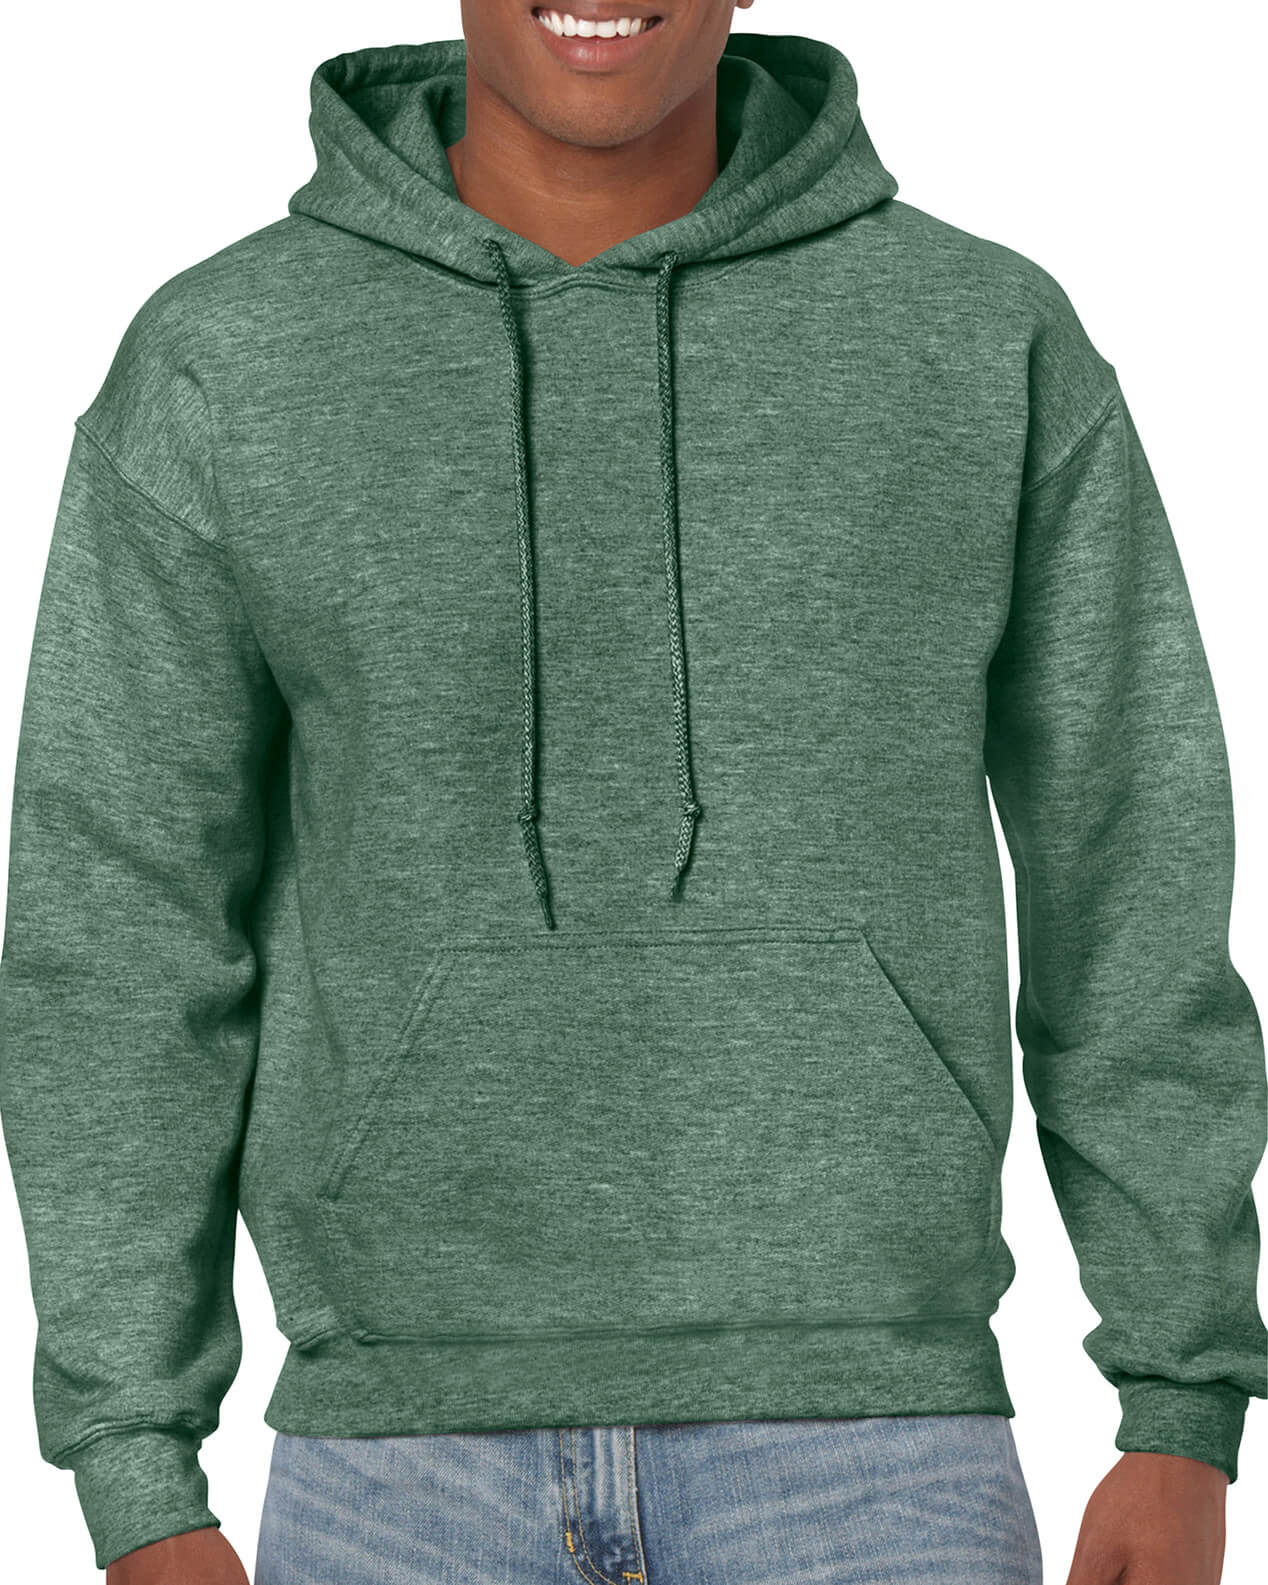 ADULT 50/50 HOODED SWEAT-Green Marl